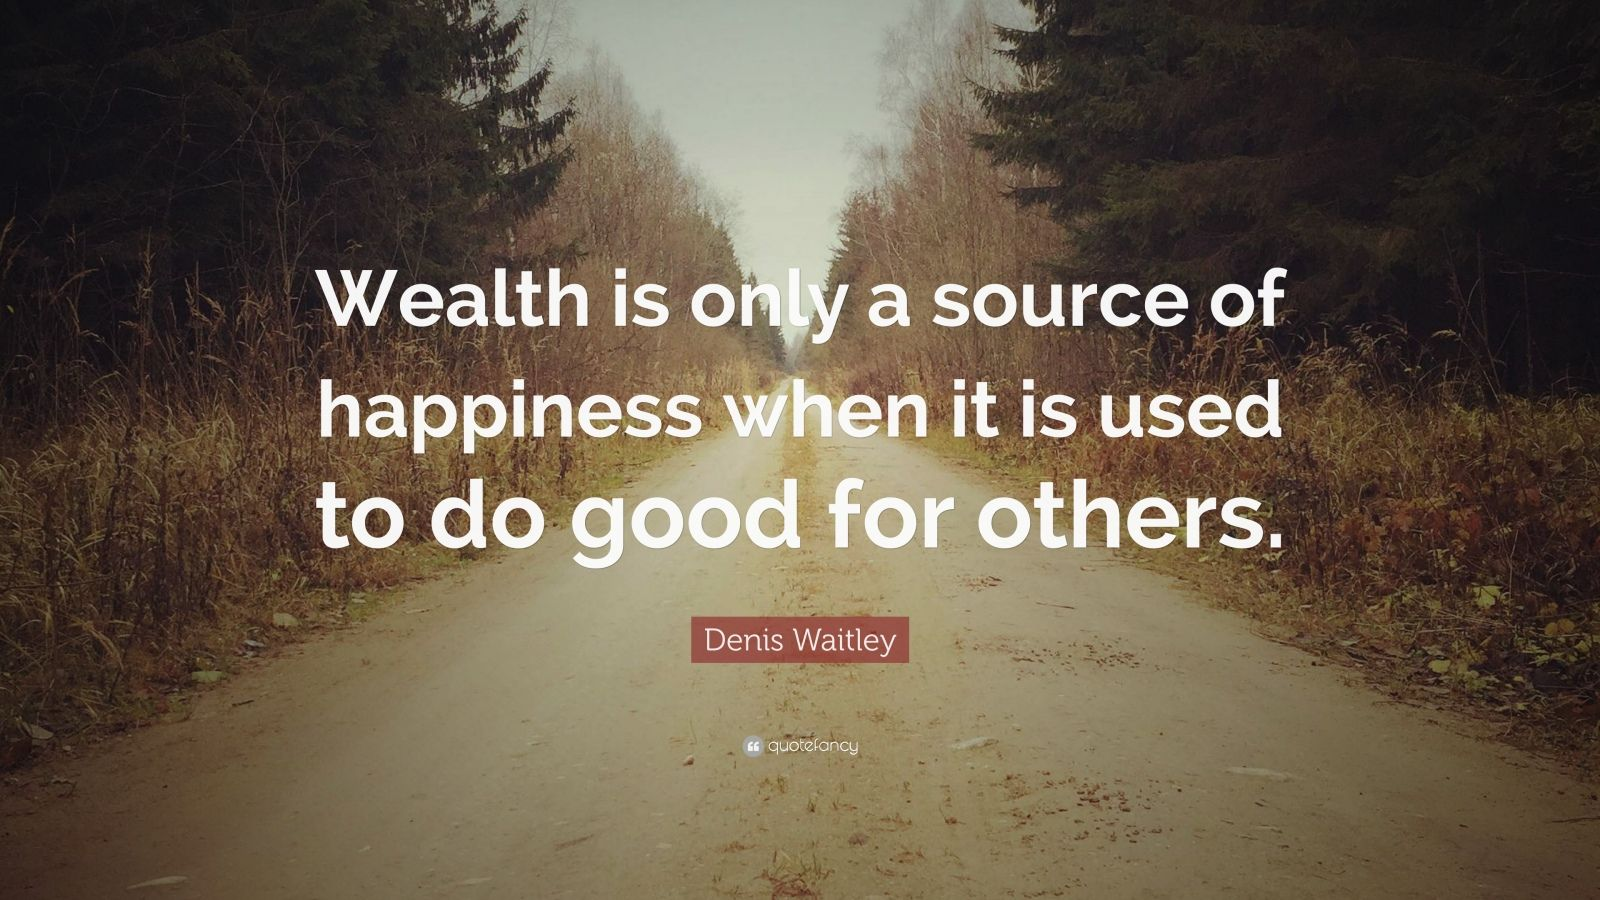 """Denis Waitley Quote: """"Wealth is only a source of happiness when it is used to do good for others."""""""